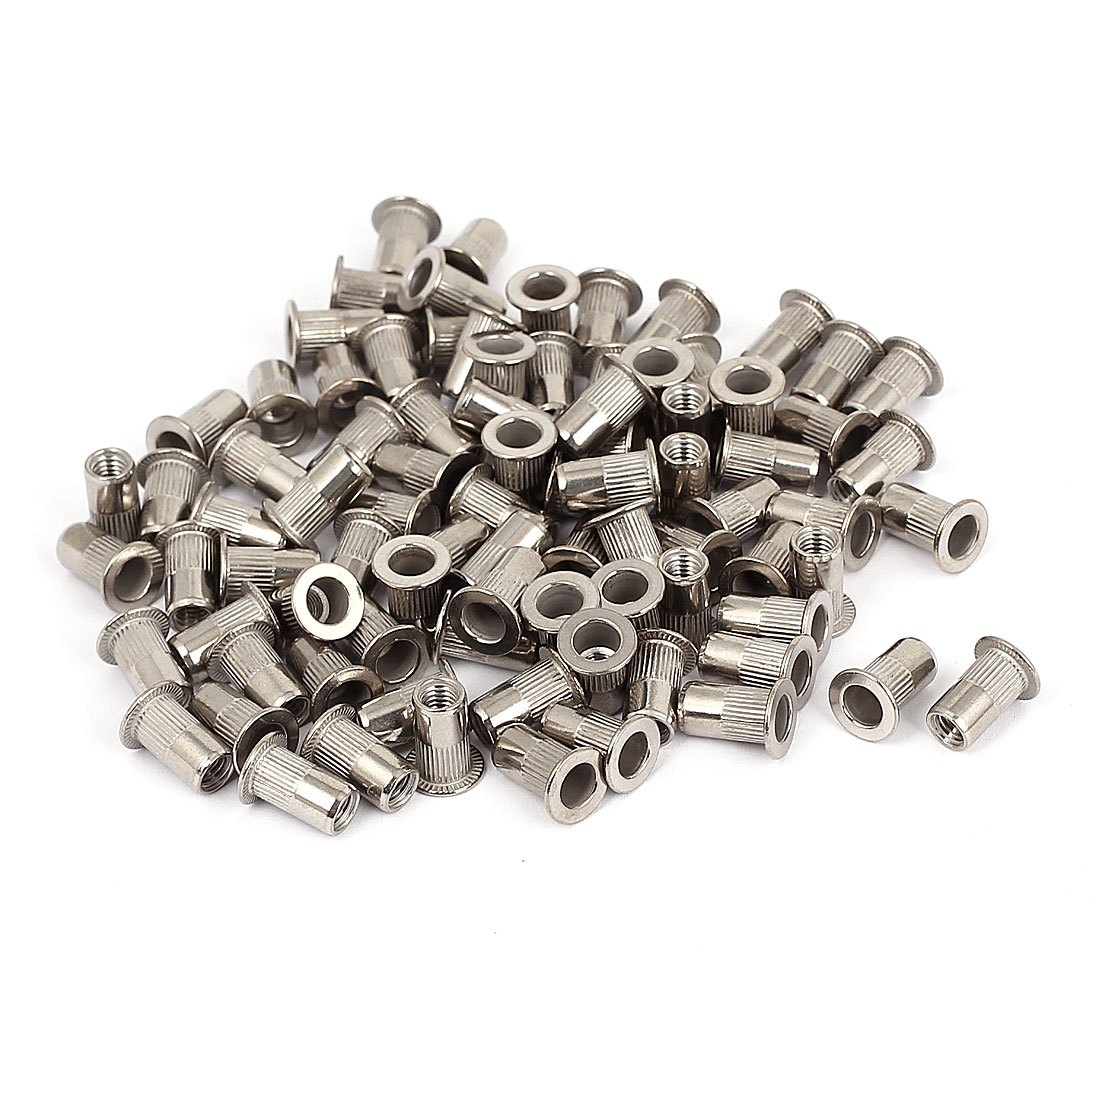 100pcs M5 Stainless Steel Serrated Flat Head Threaded Rivet Nut Nutserts